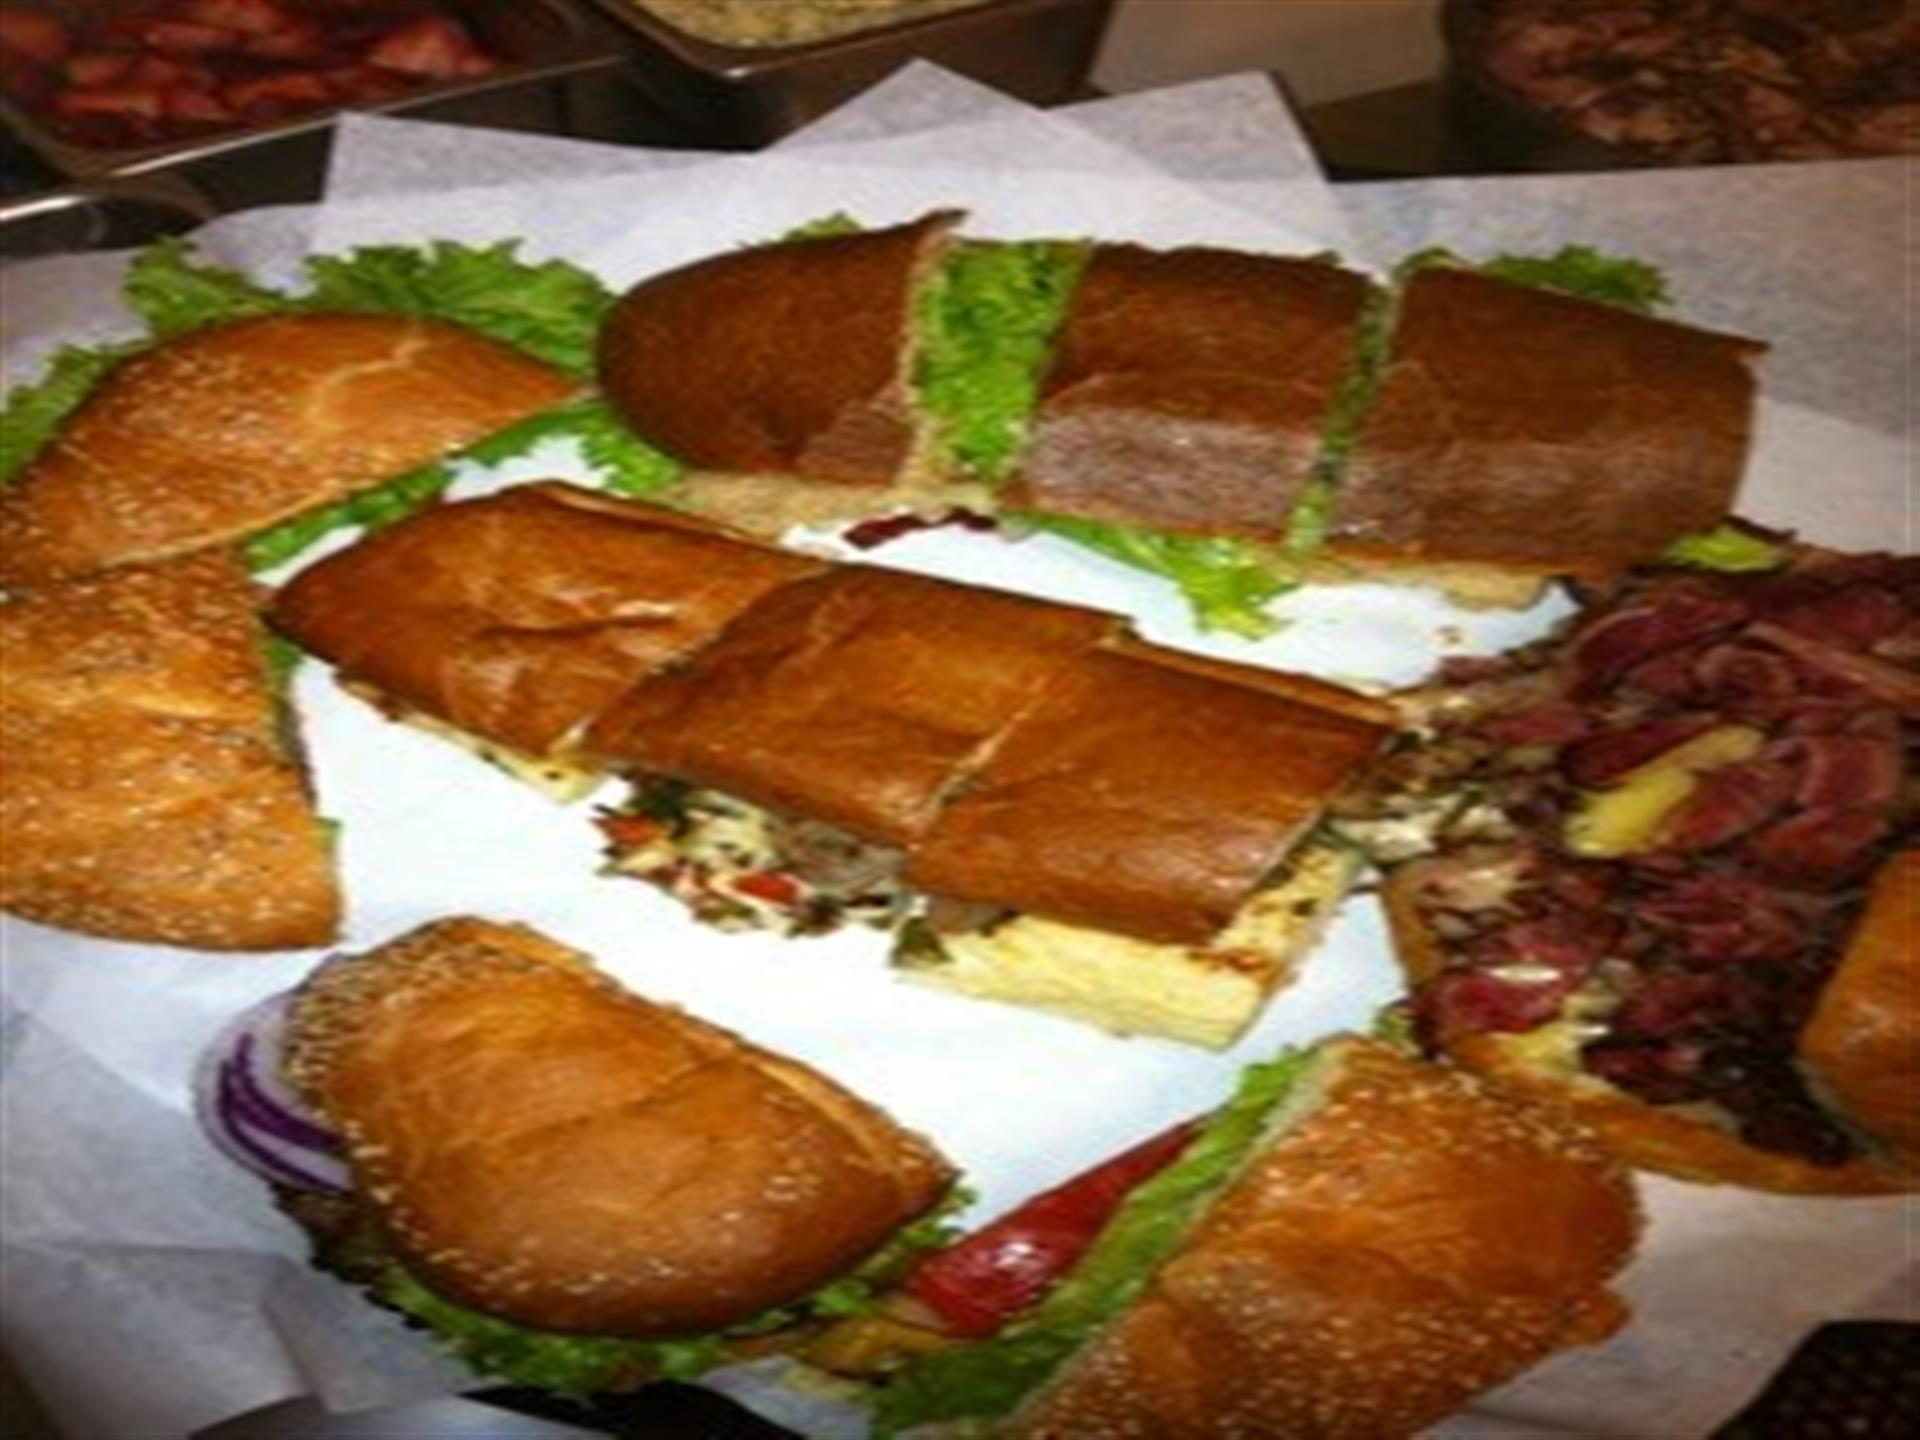 Assortment of sandwiches on parchment paper